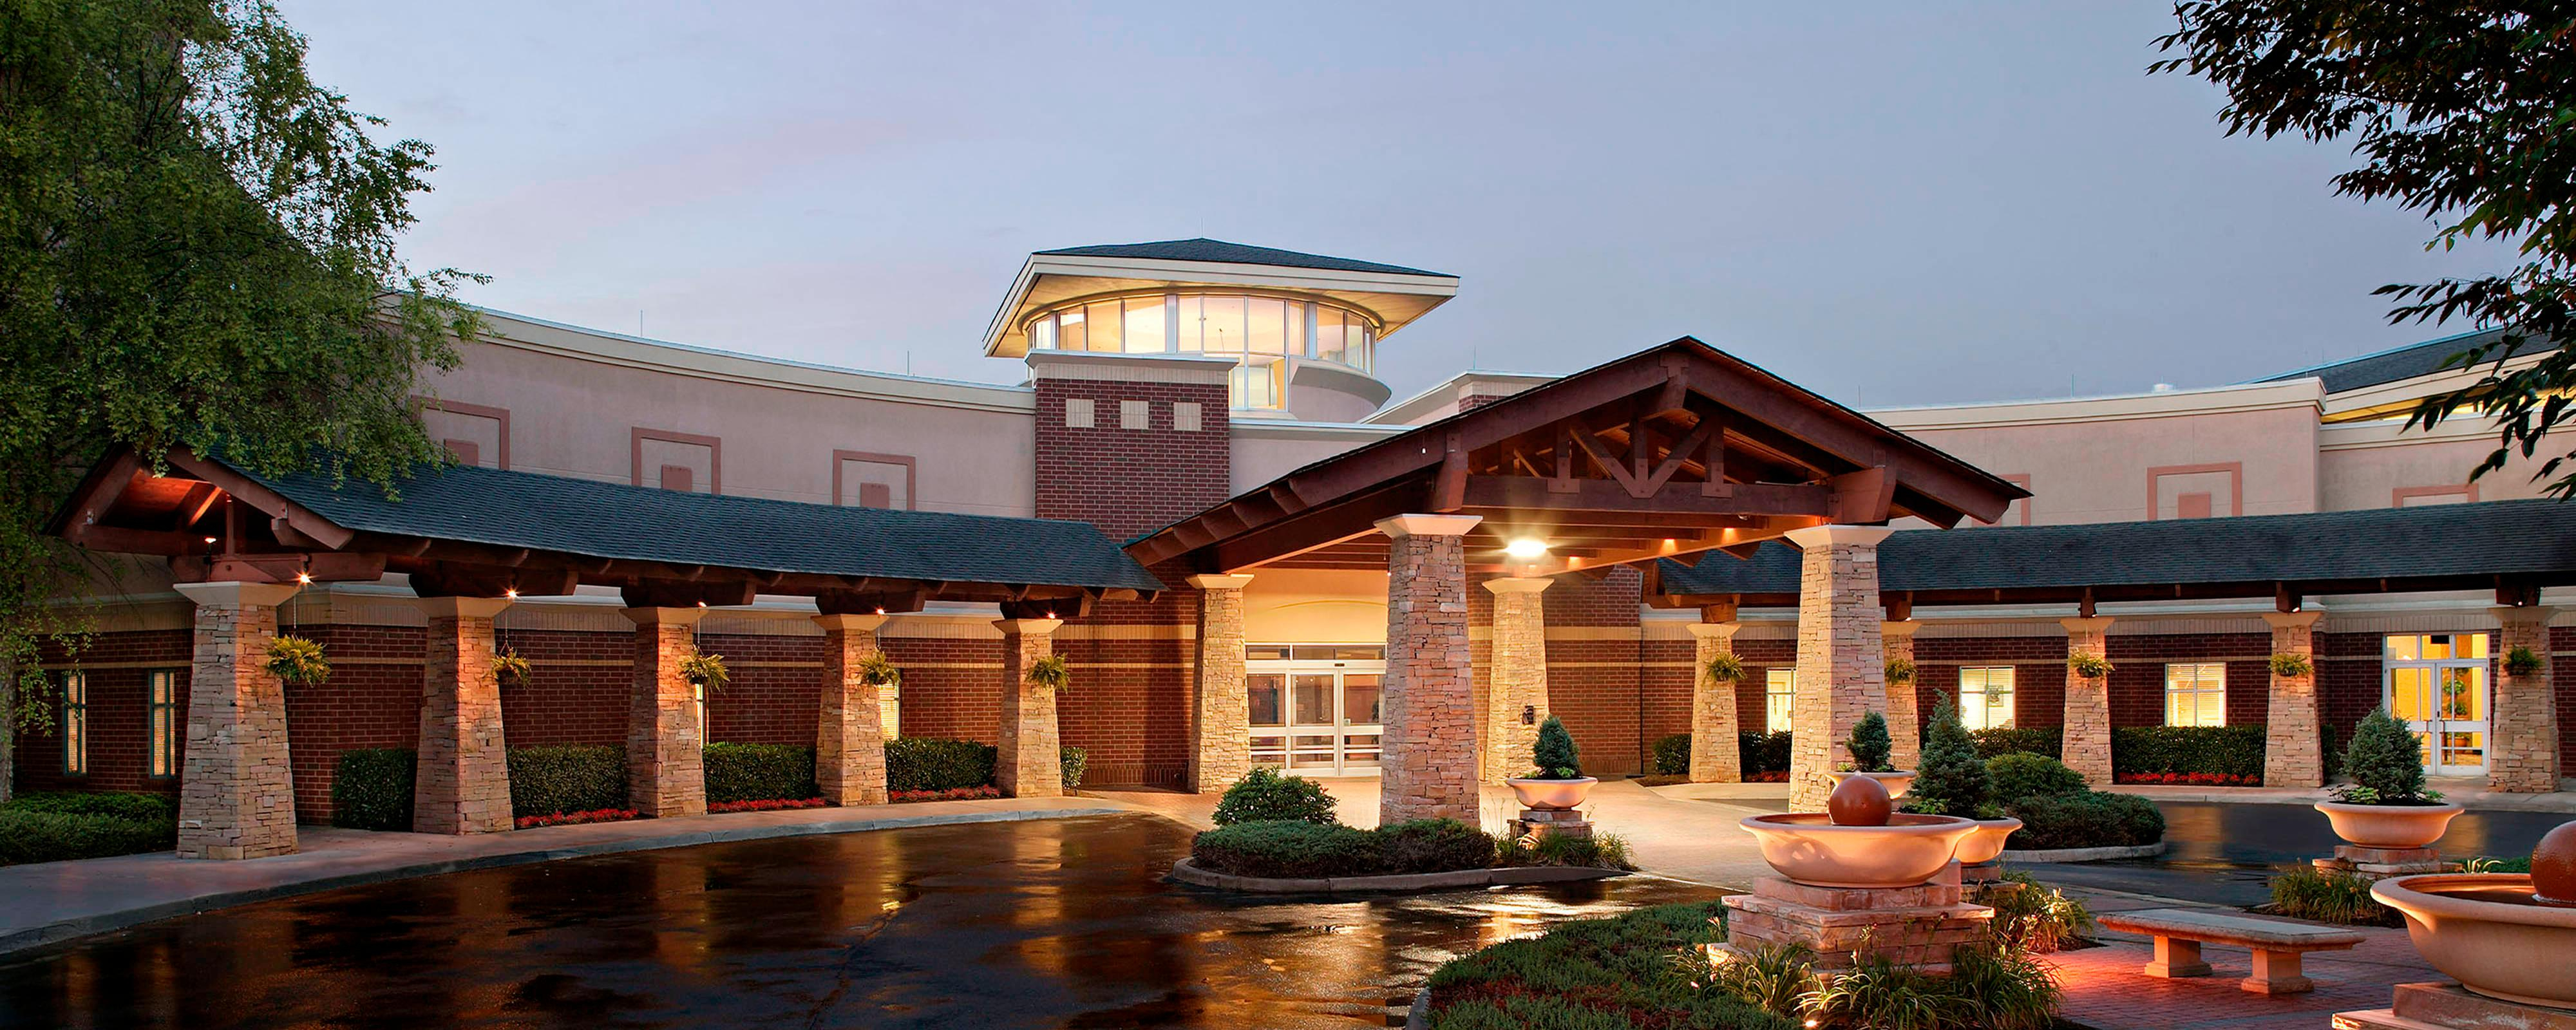 Kingsport Tennessee Hotel | Meadowview Conference Resort For Meadowview Convention Center Schedule Events In 2021